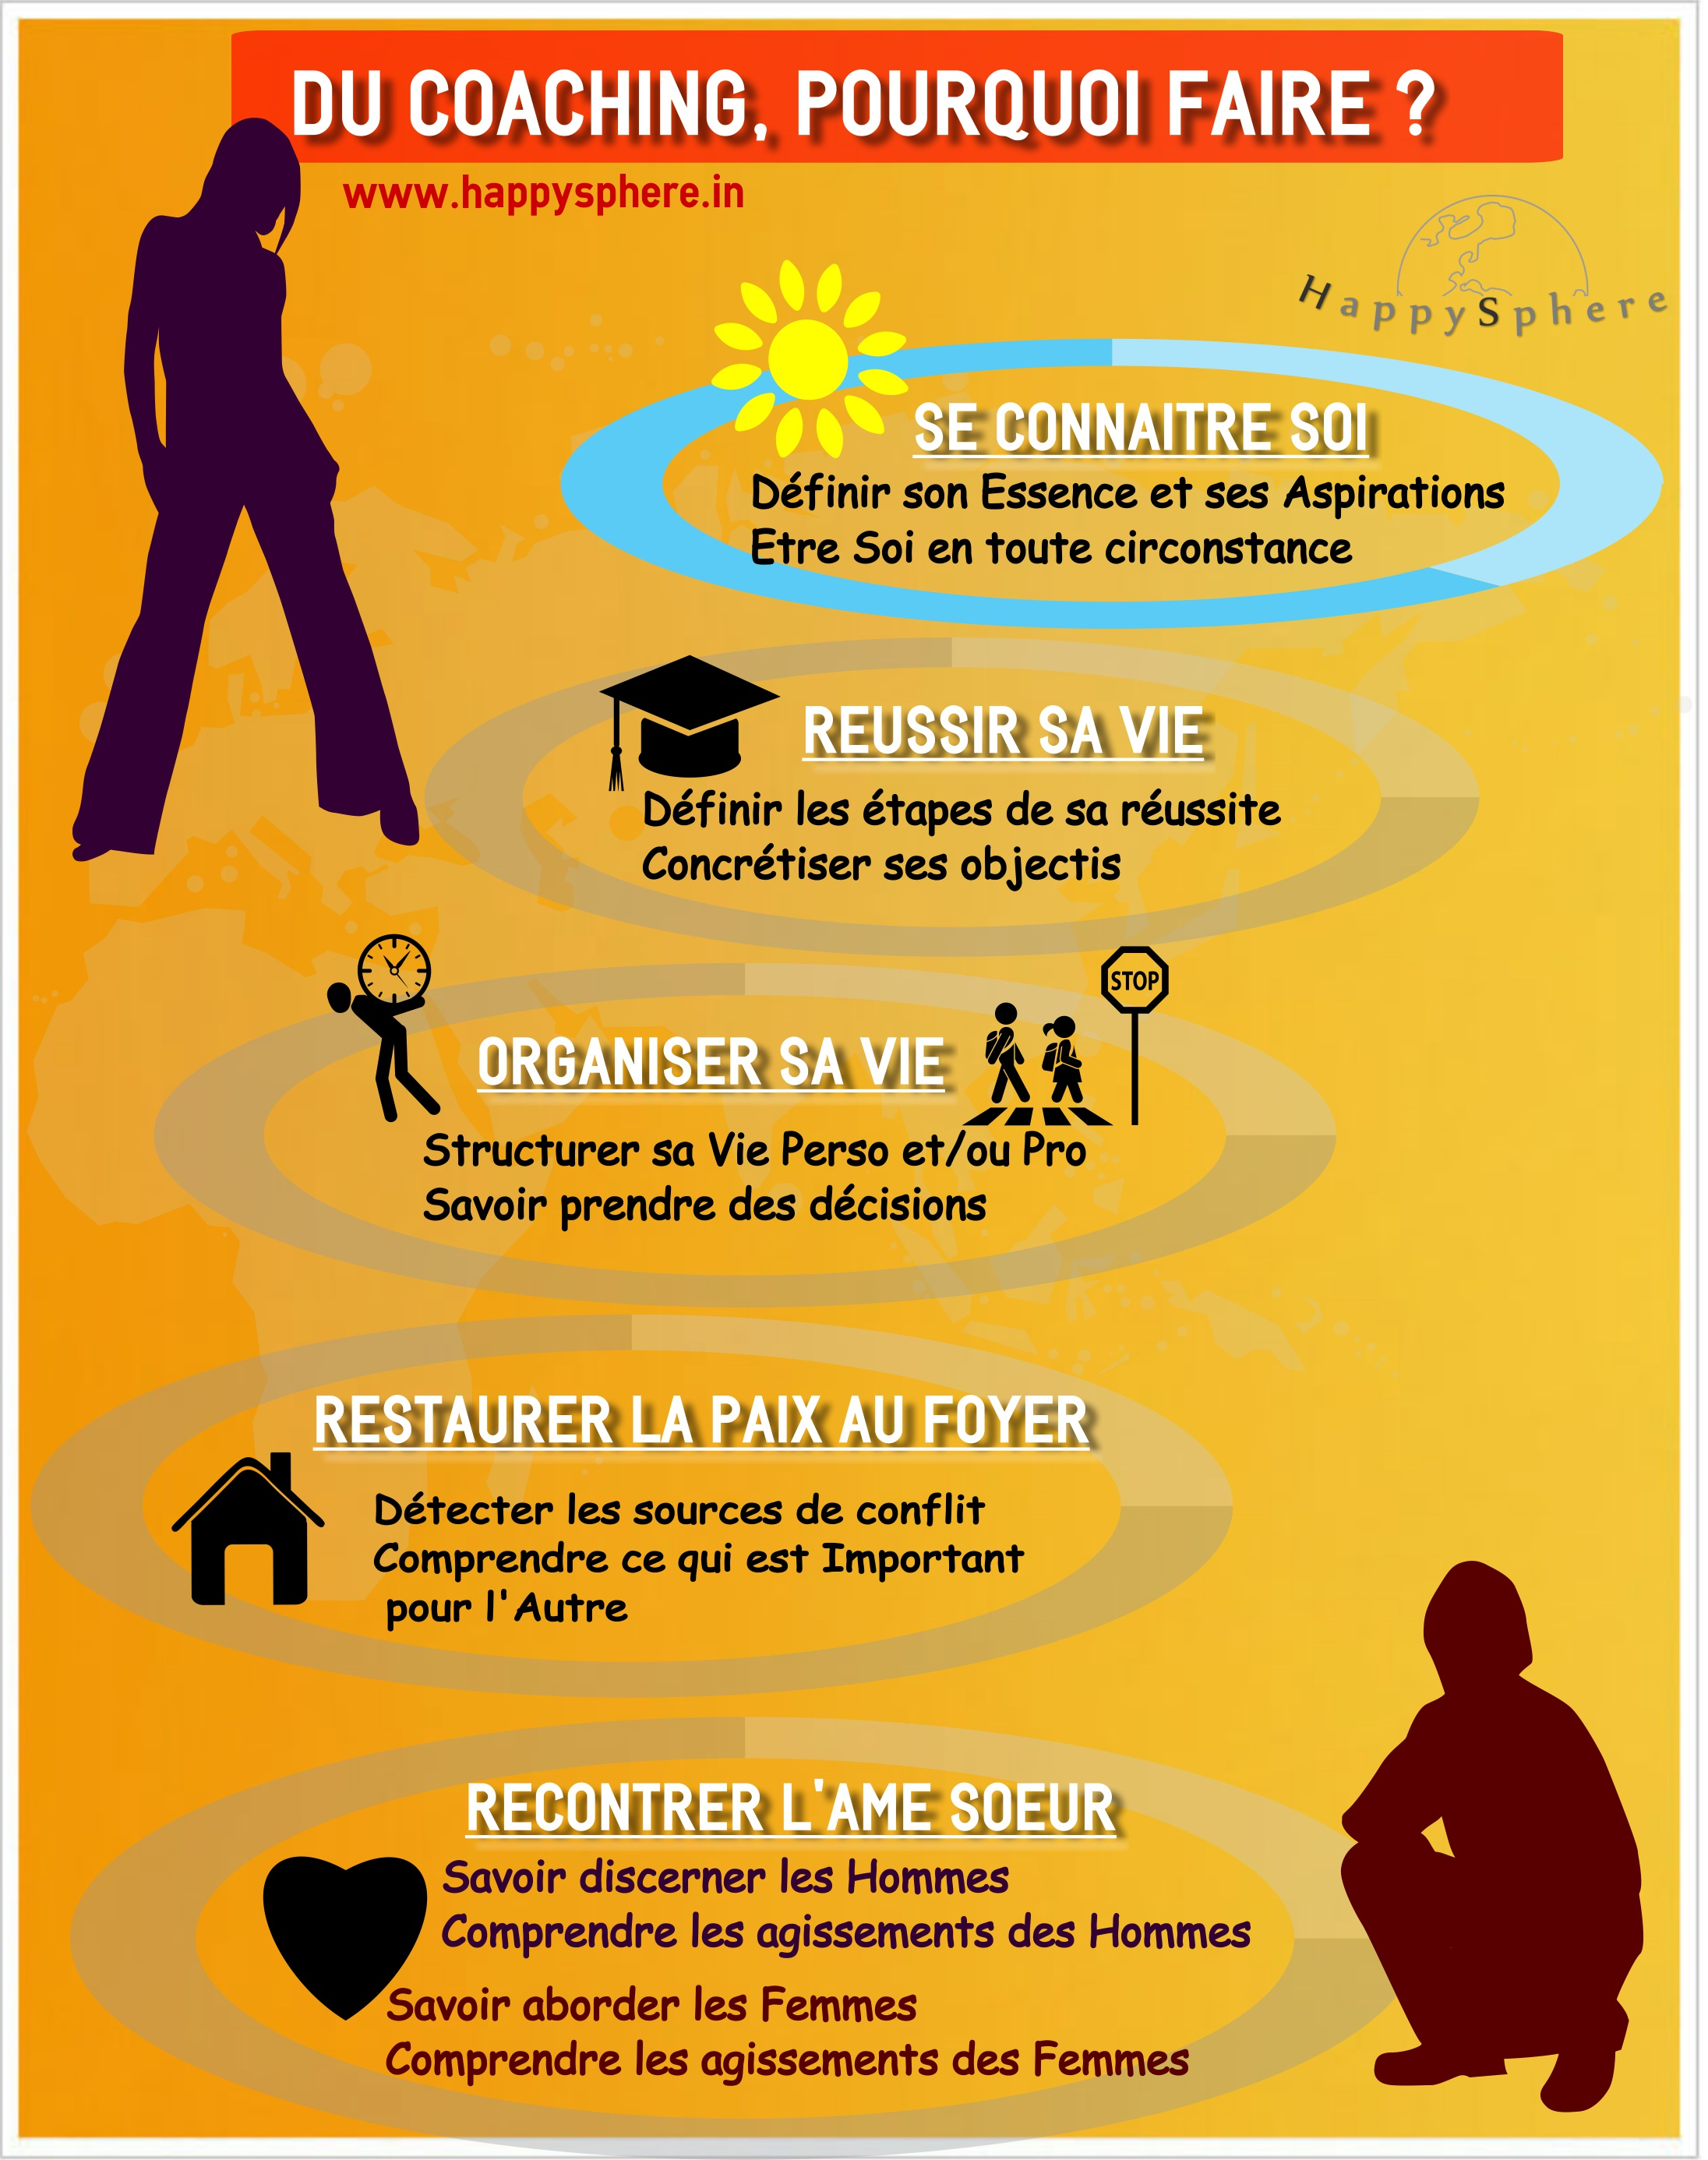 Pourquoi faire du coaching